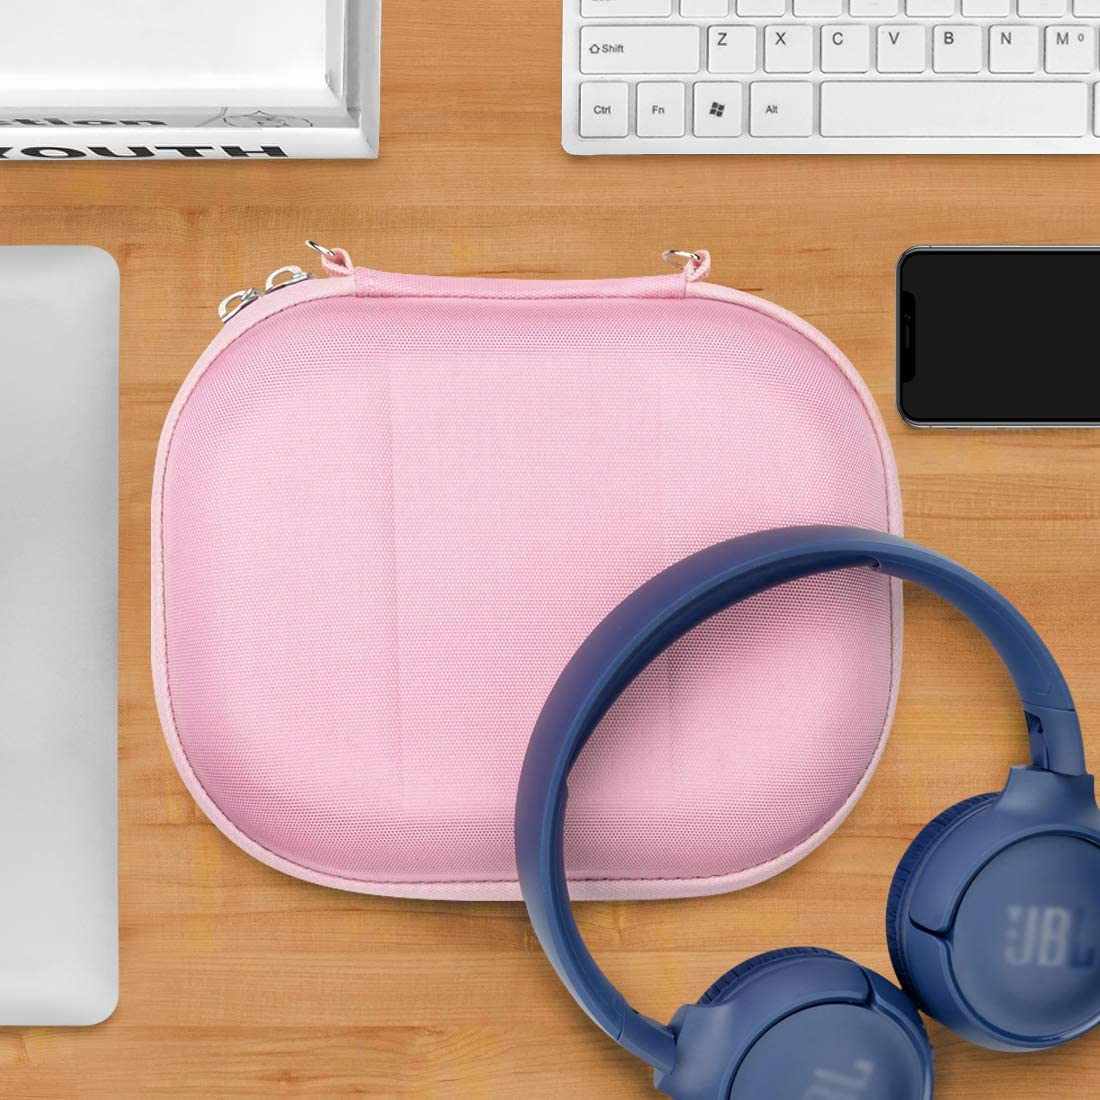 Tune 500BT T450BT Pink TUNE600BT Protective Hard Shell Travel Carrying Bag with Room for Parts E45BT Headphones Live 400BT T500BT On-Ear Geekria UltraShell Headphone Case for JBL T600BTNC